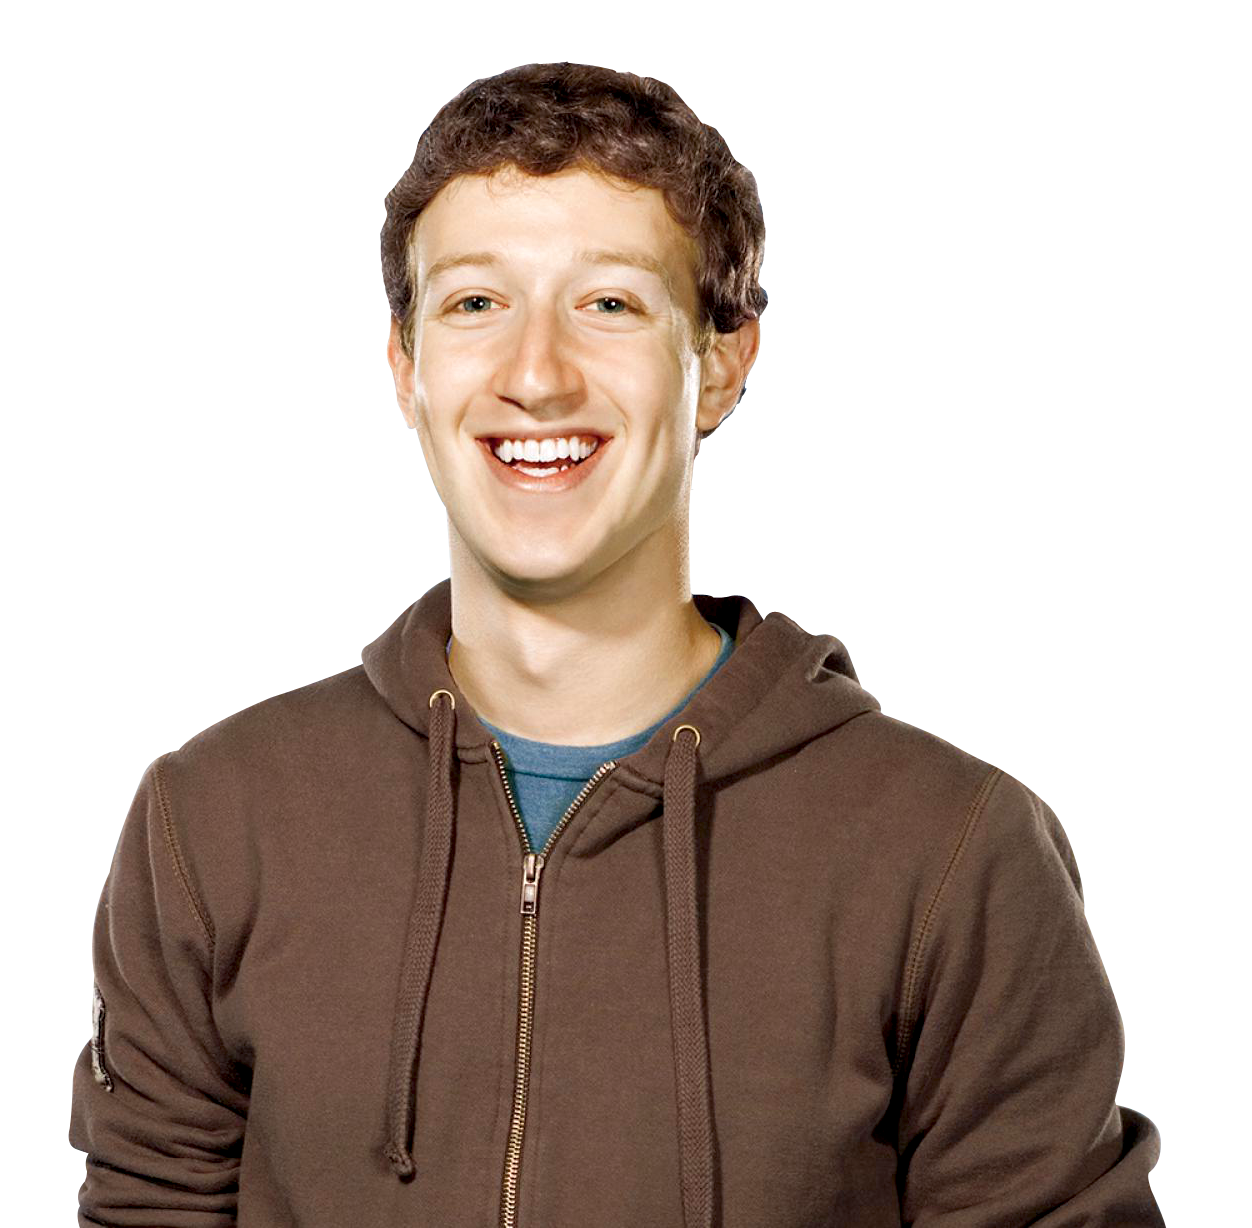 Facebook, Owner, Founder, Laughing, Mark Zuckerberg Png image #44935